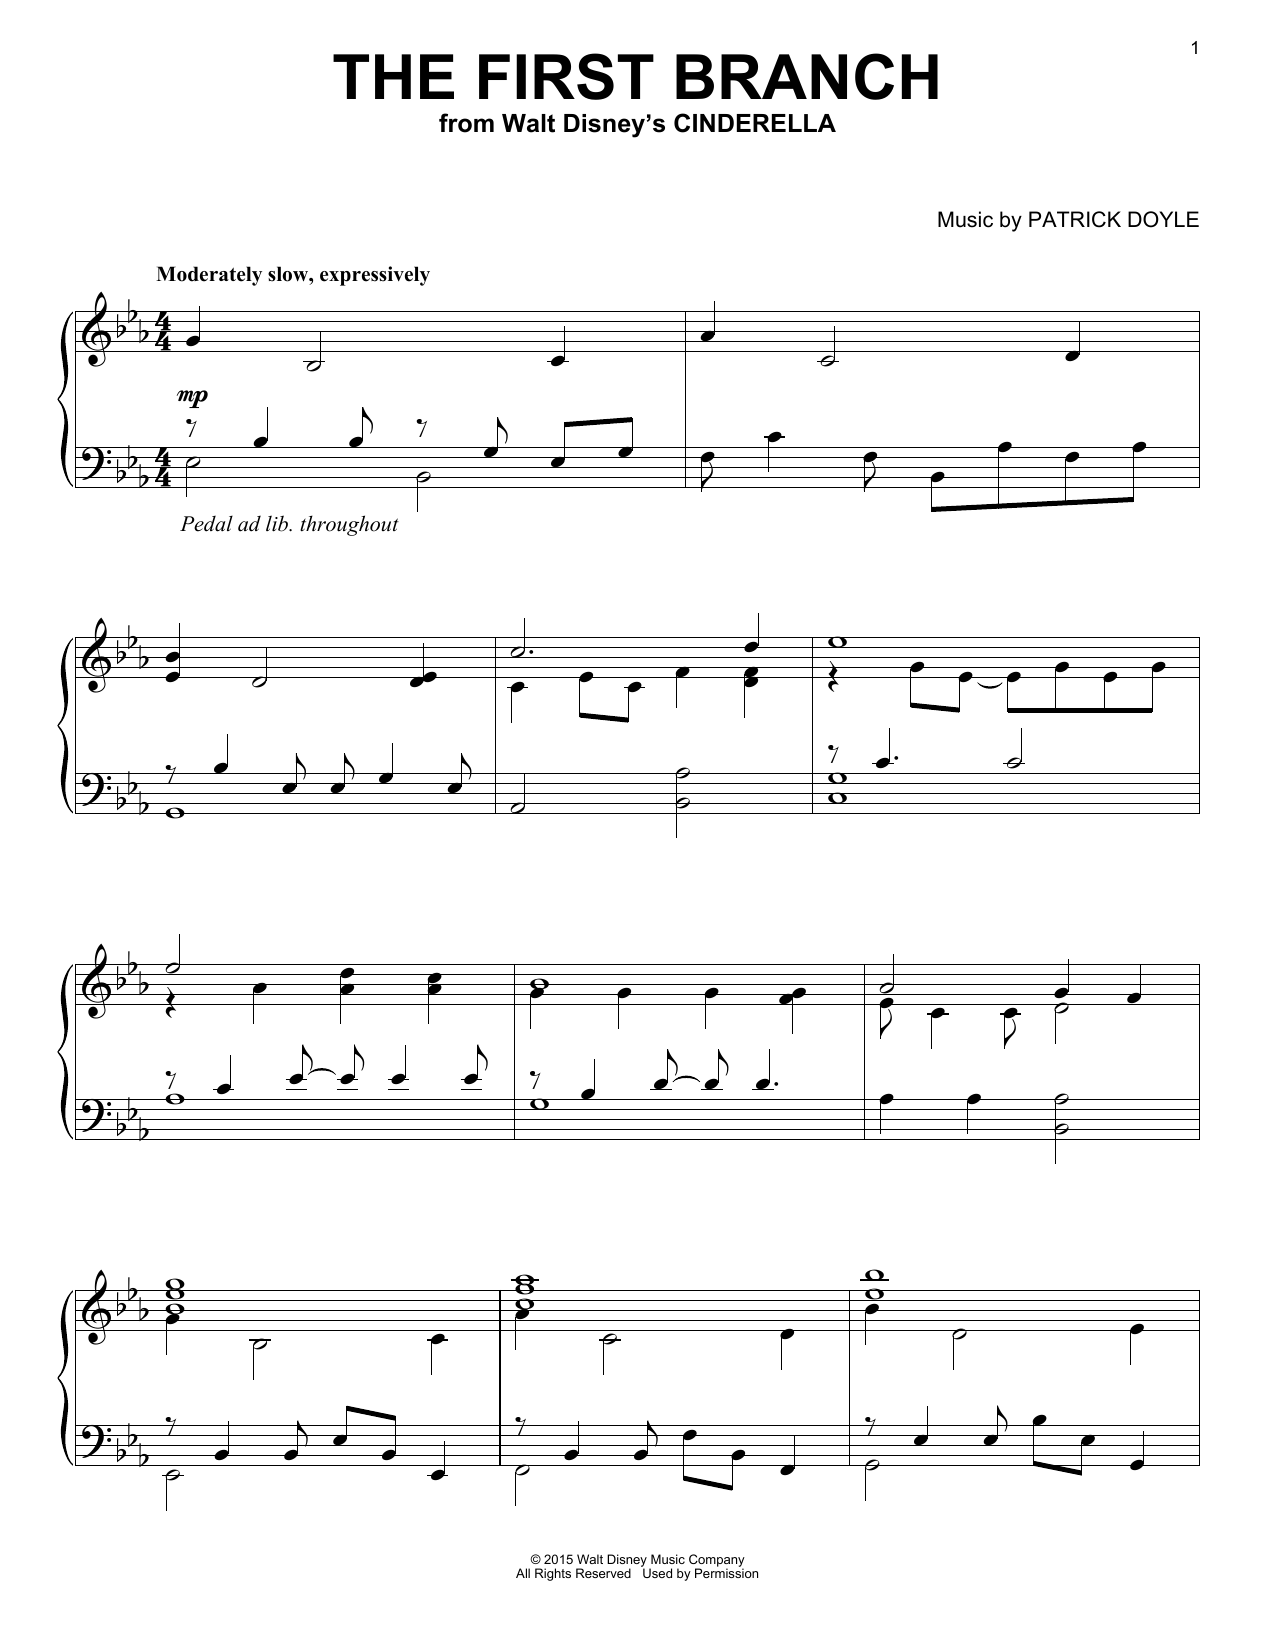 Patrick Doyle The First Branch sheet music notes and chords. Download Printable PDF.